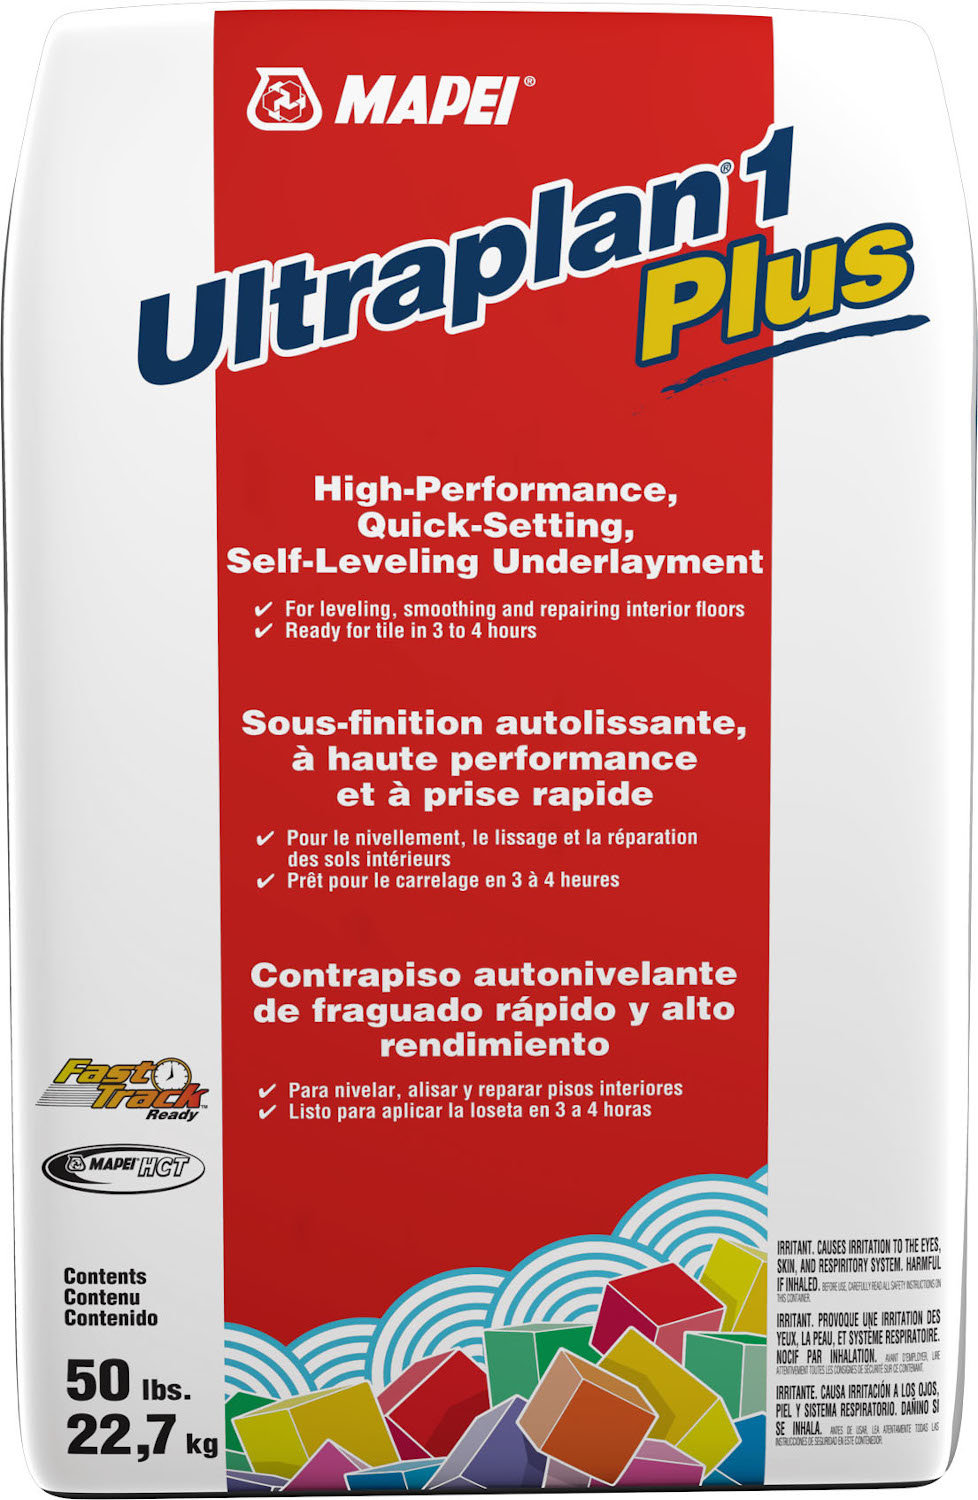 High-Performance, Quick-Setting, Self-Leveling Underlayment